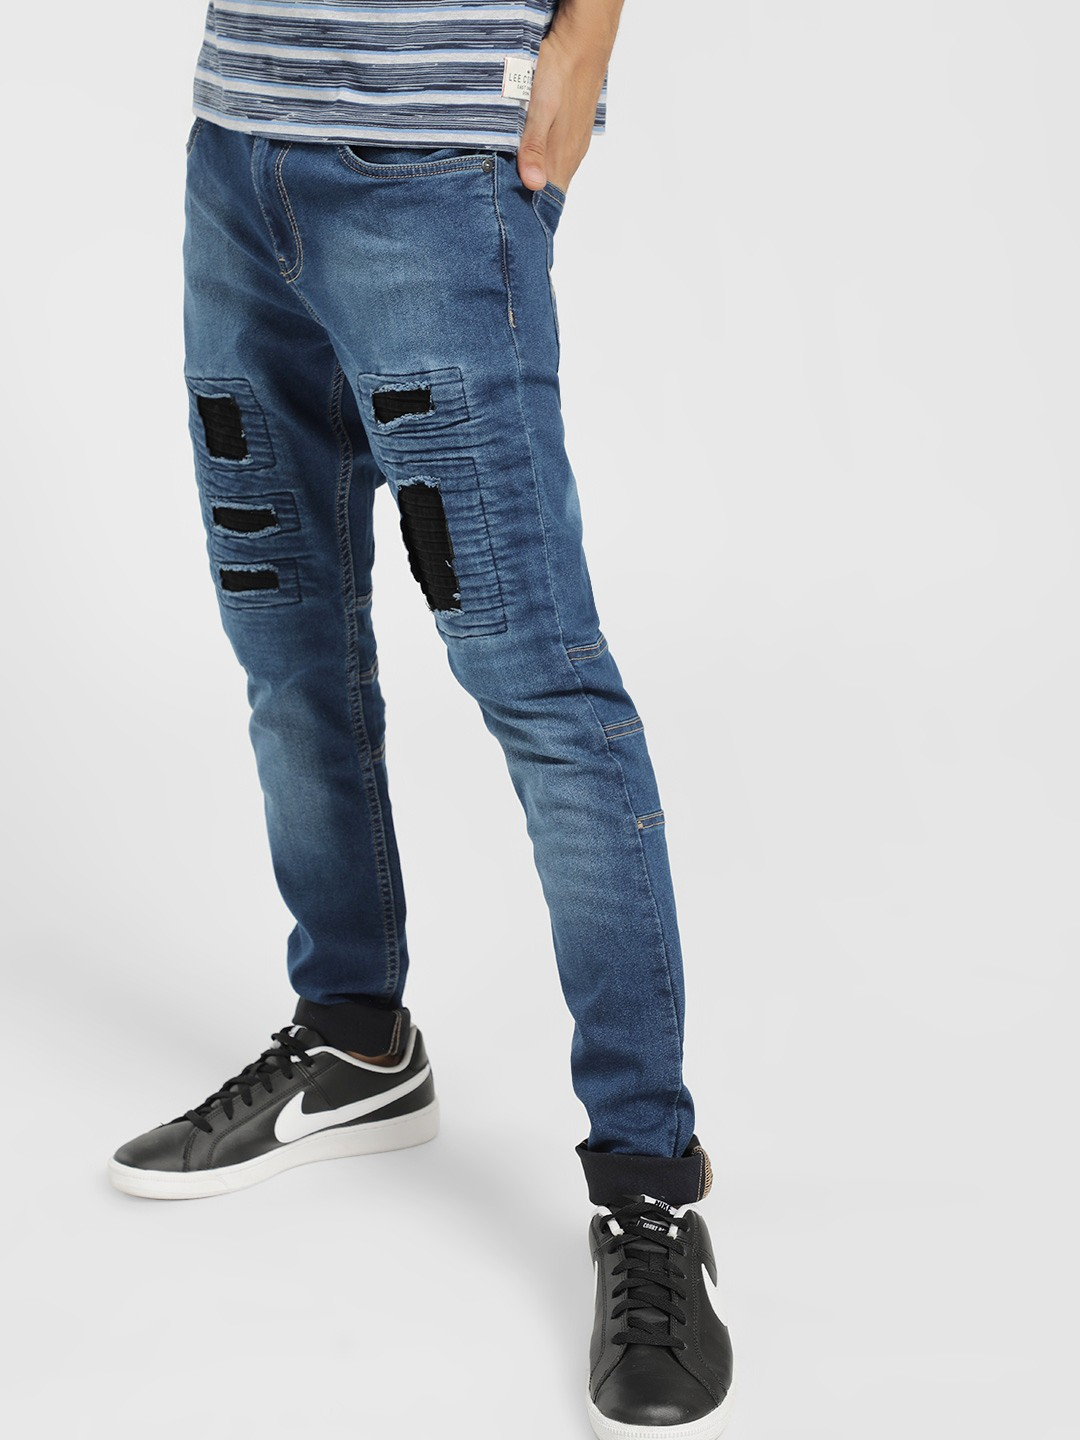 X.O.Y.O Blue Mid-Wash Patch Panelled Slim Jeans 1